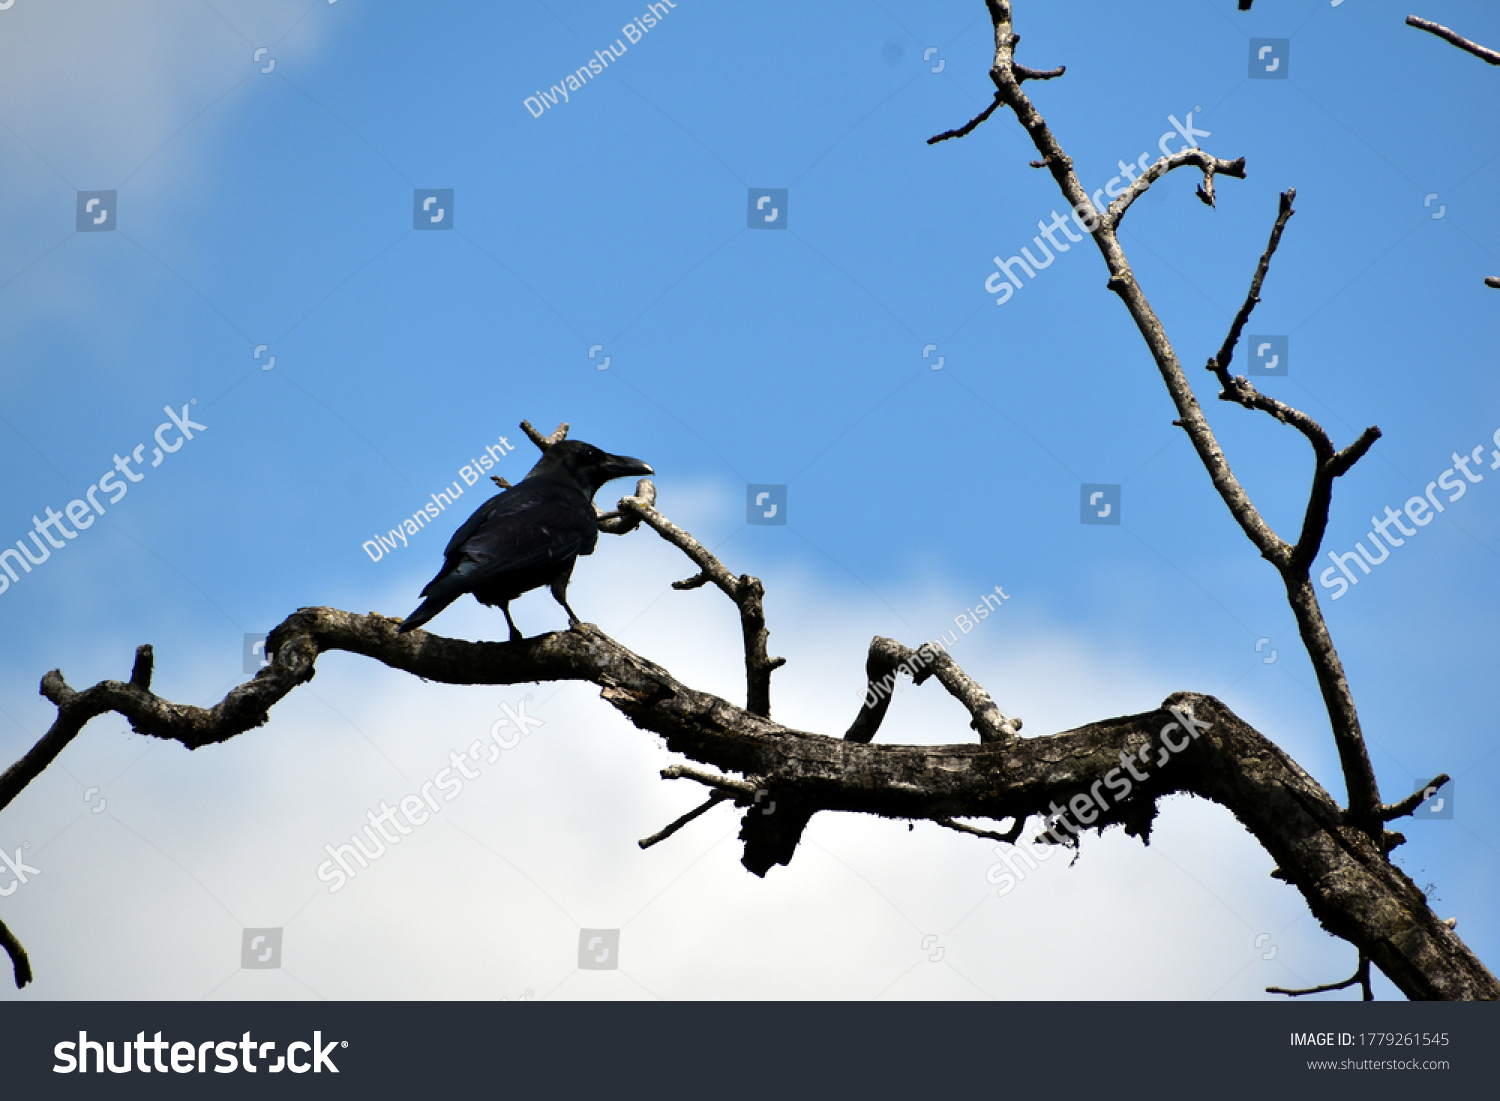 Beautiful picture of crow and tree branches #1779261545